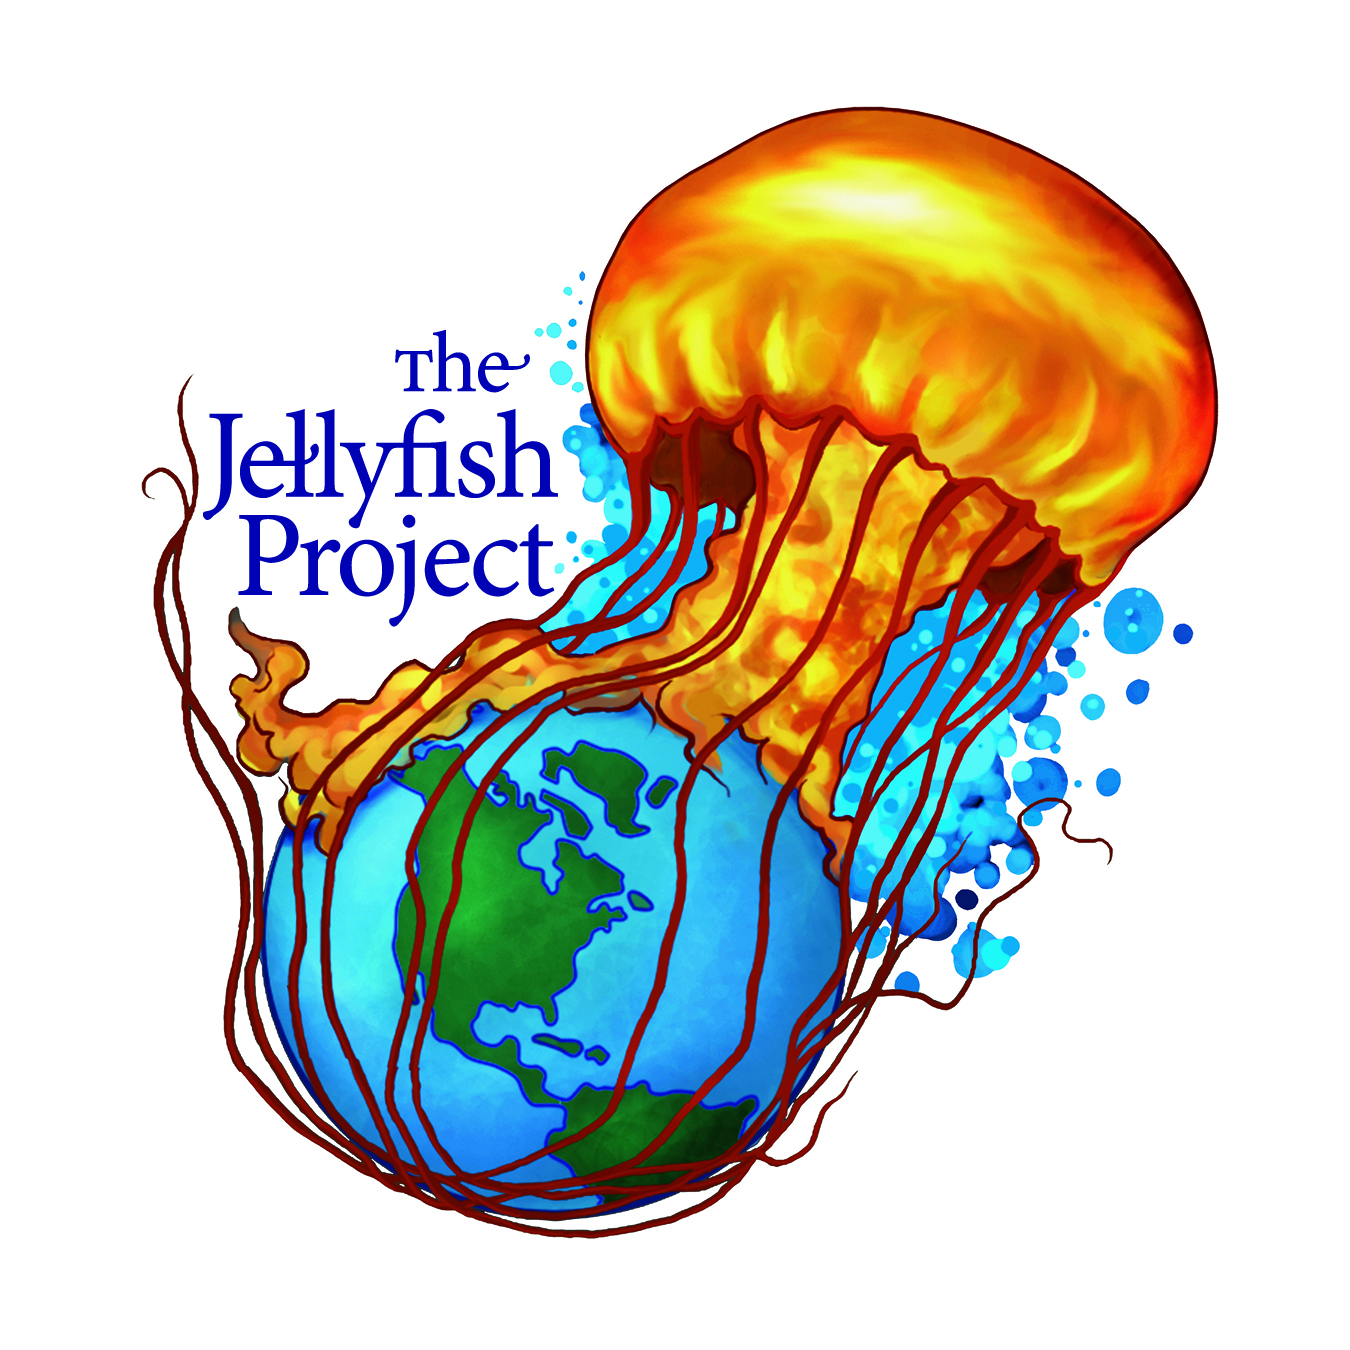 CLICK TO VISIT THE JELLYFISH PROJECT WEBSITE